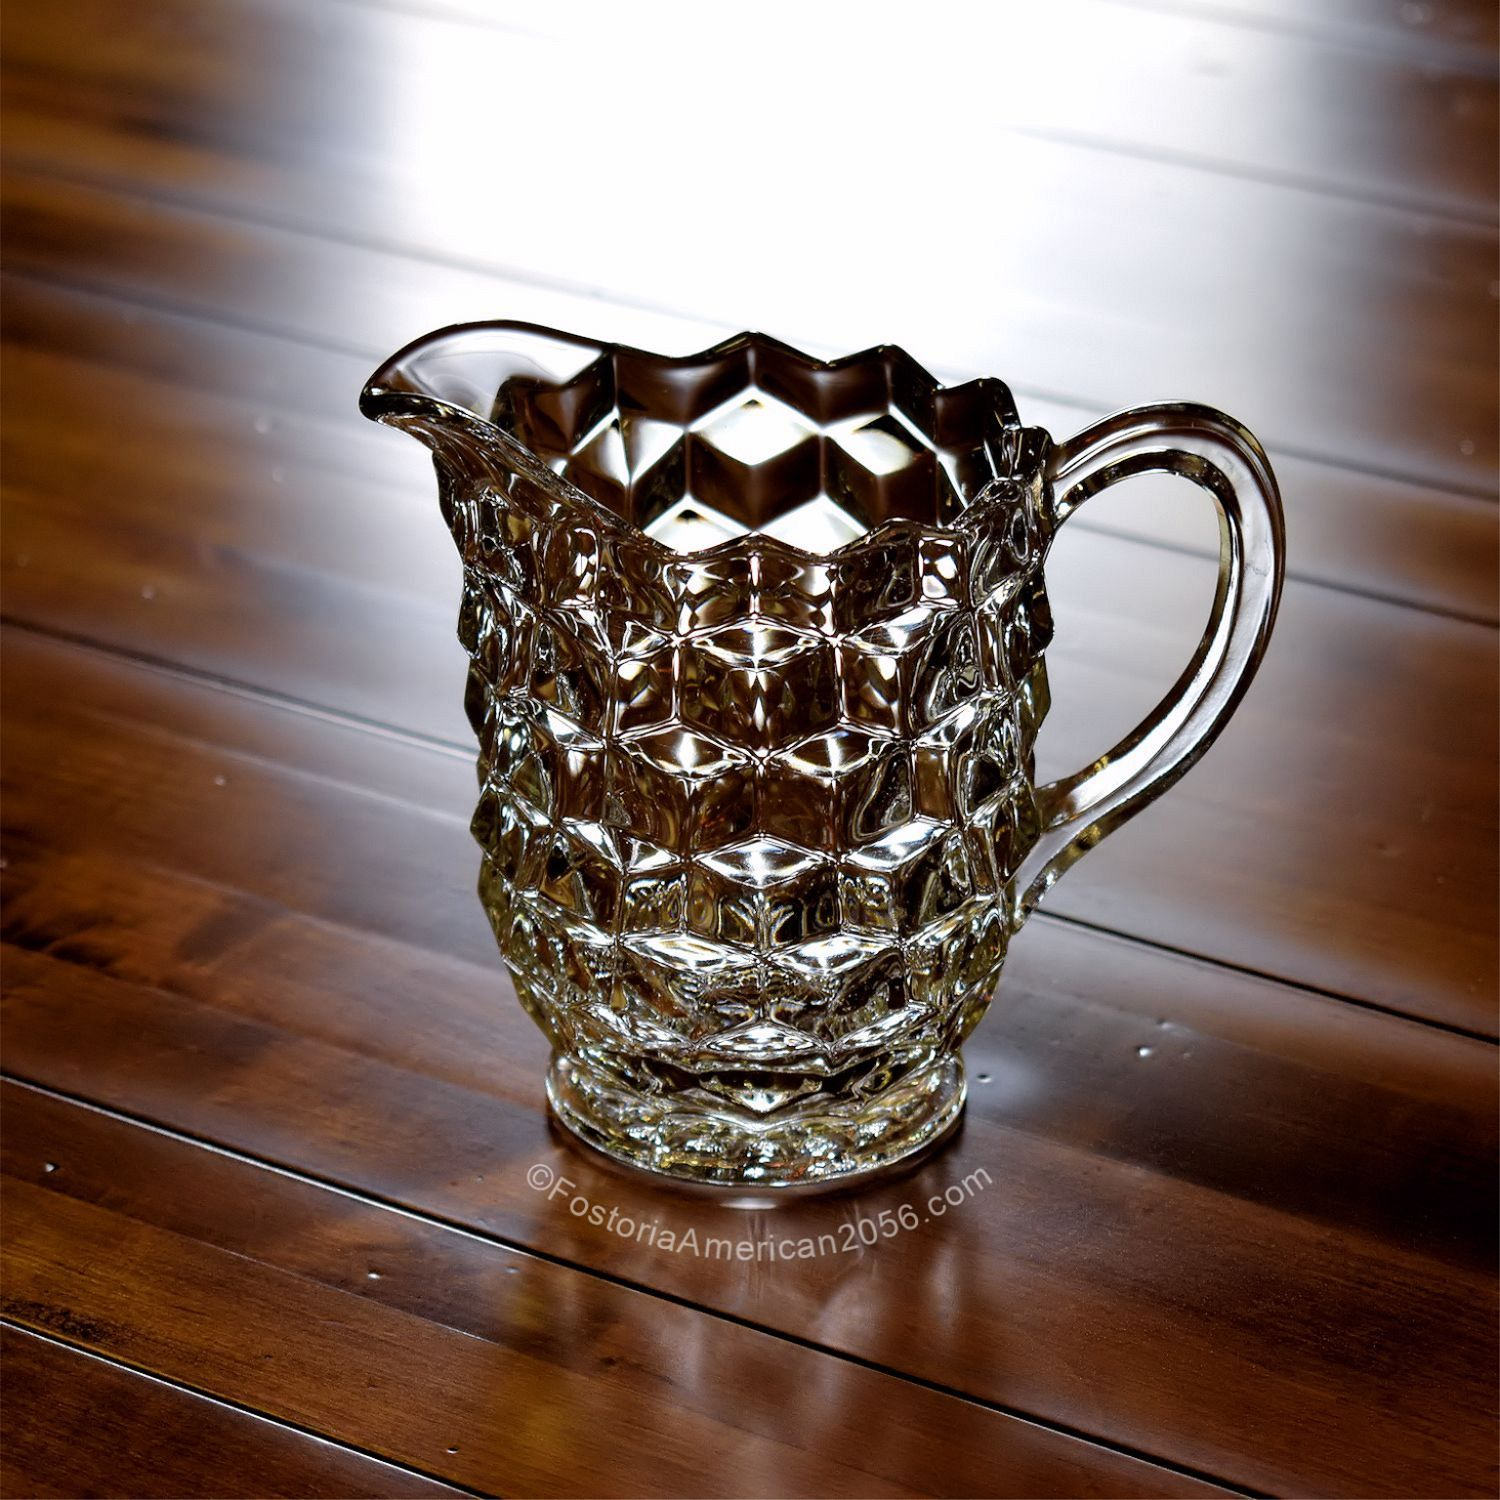 Fostoria American Pint Cereal Pitcher